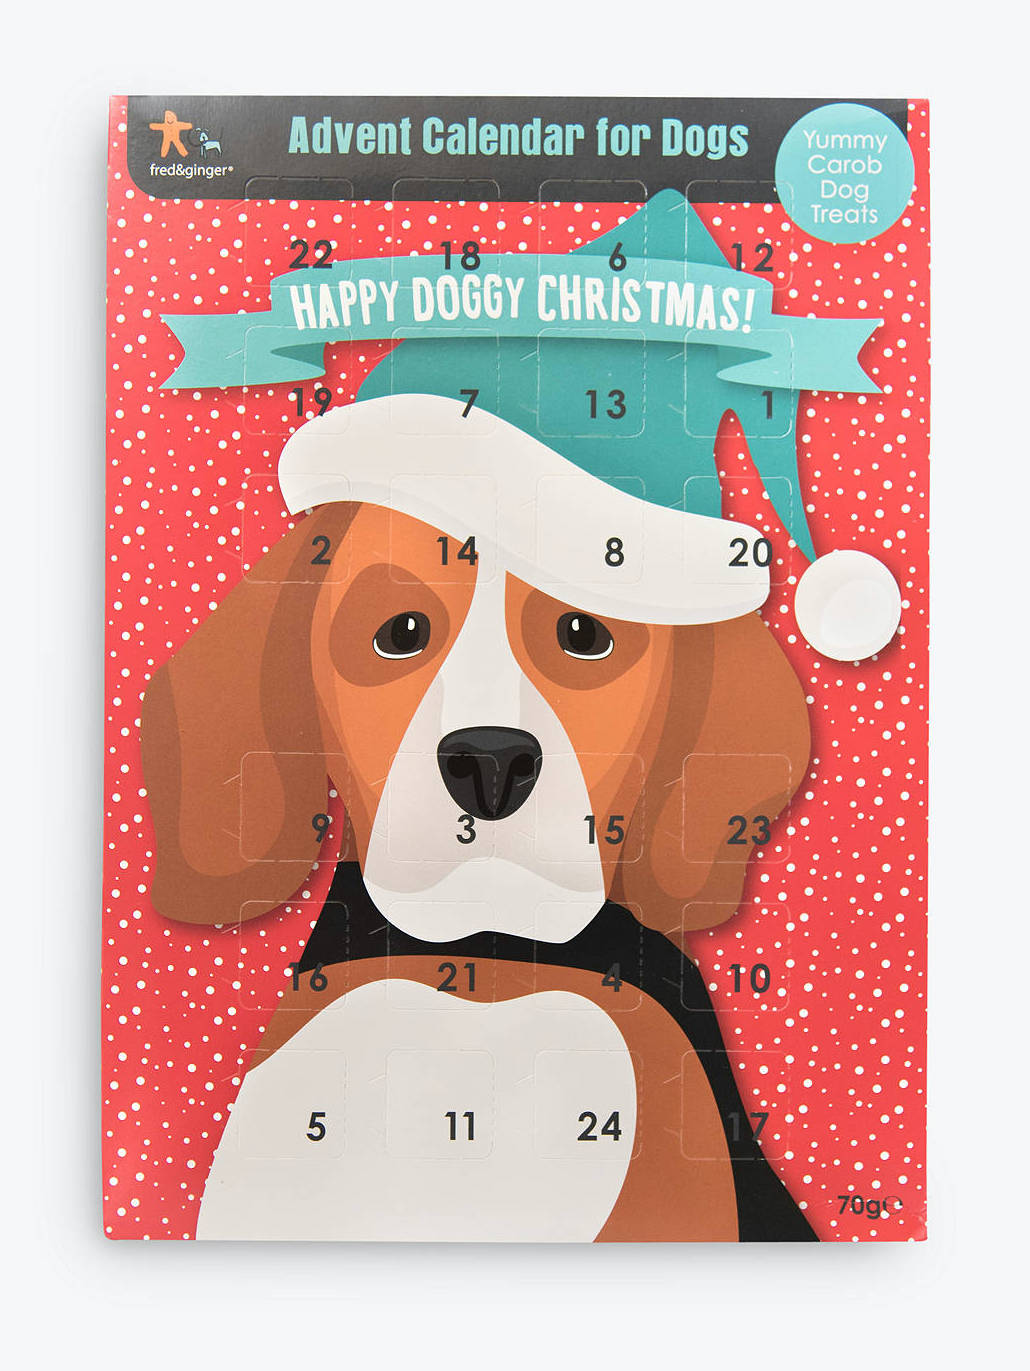 Stock image of a doggy advent calendar.